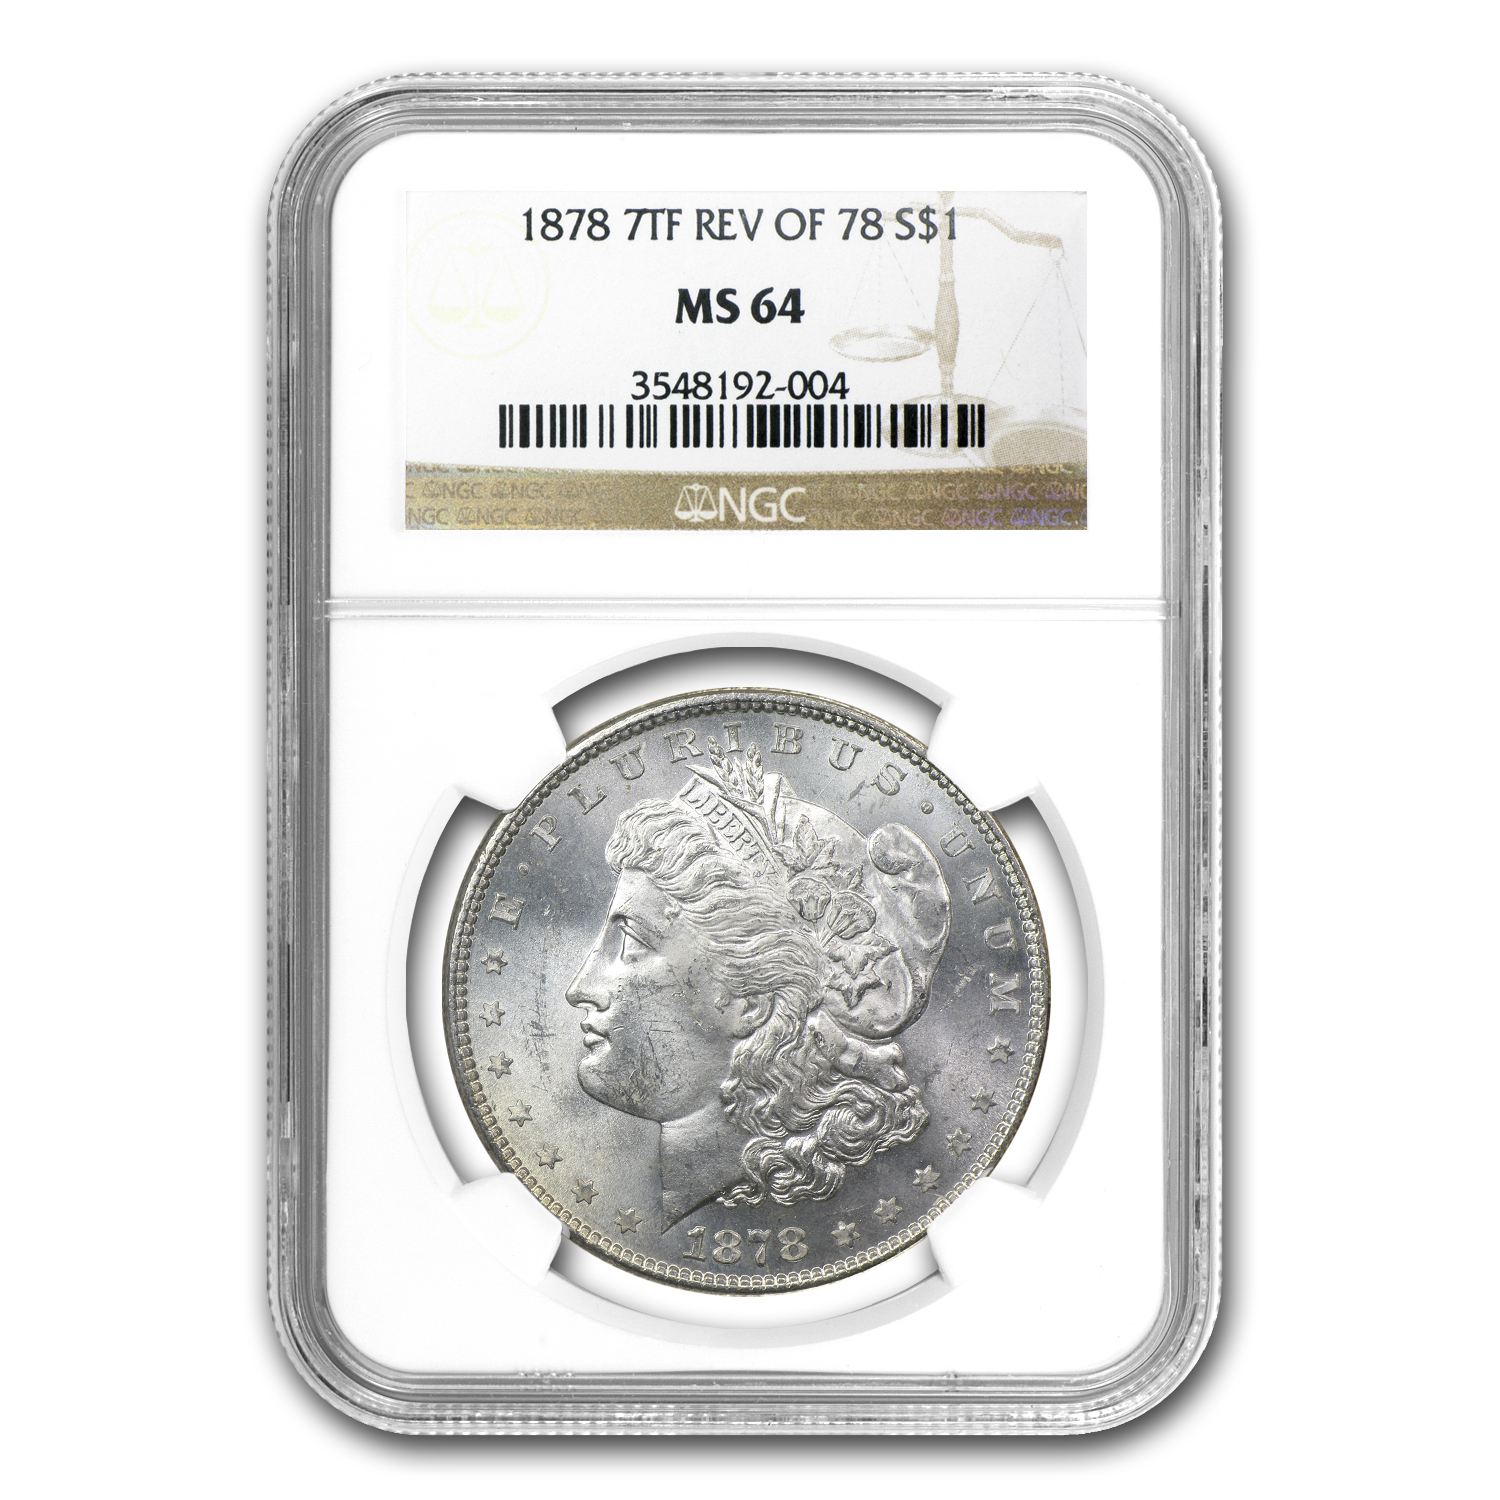 1878 Morgan Dollar - 7 Tailfeathers Rev. of 78 MS-64 NGC